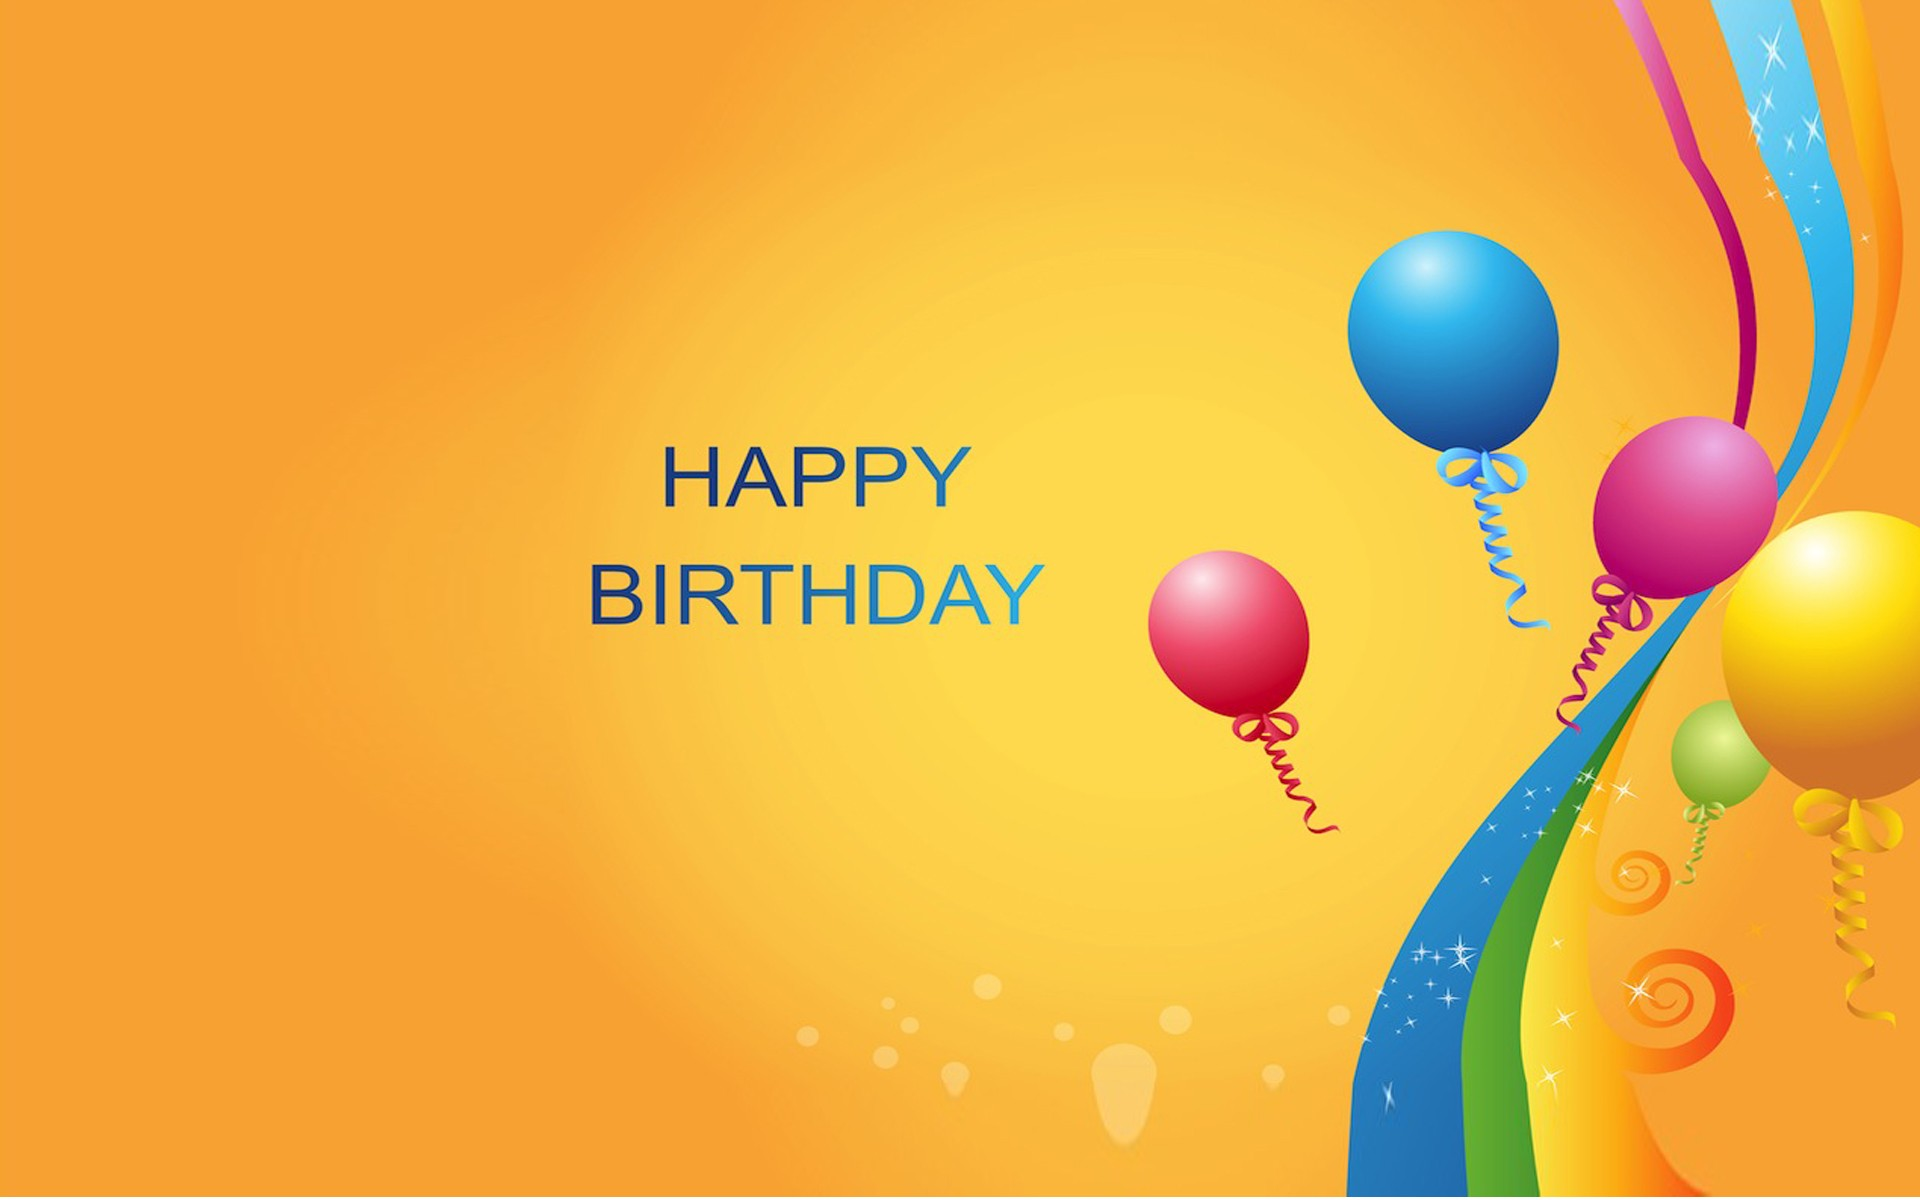 birthday background wallpapers hd ; 37328695-happy-birthday-hd-images